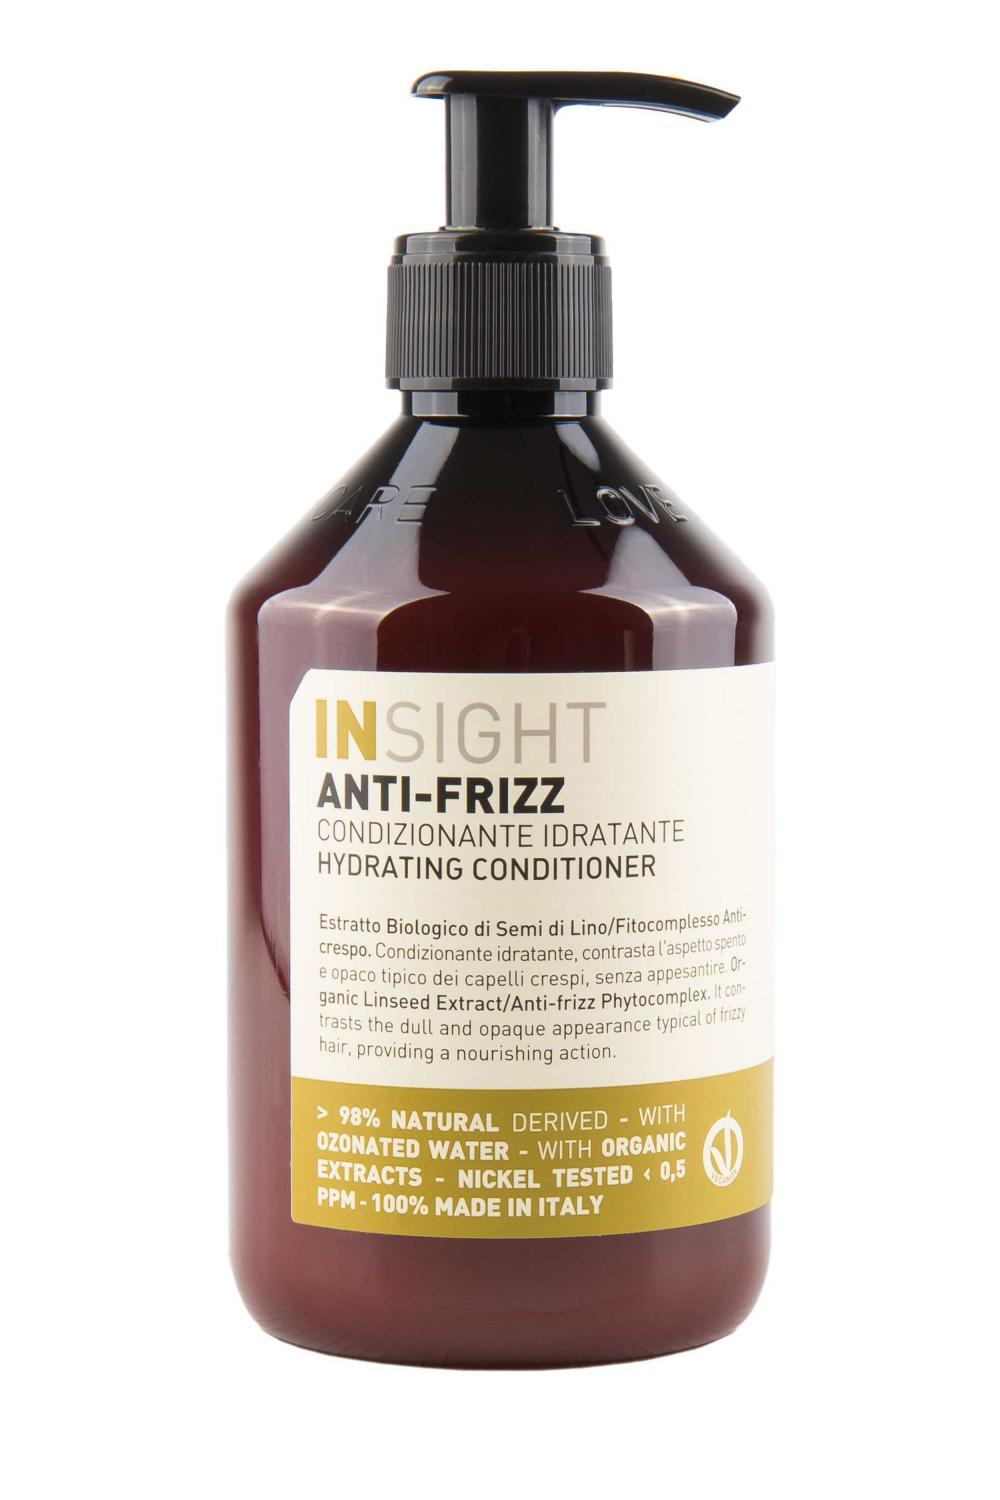 Insıght Anti-Frizz Hydrating Nemlendirici Bakım Kremi 400 ml